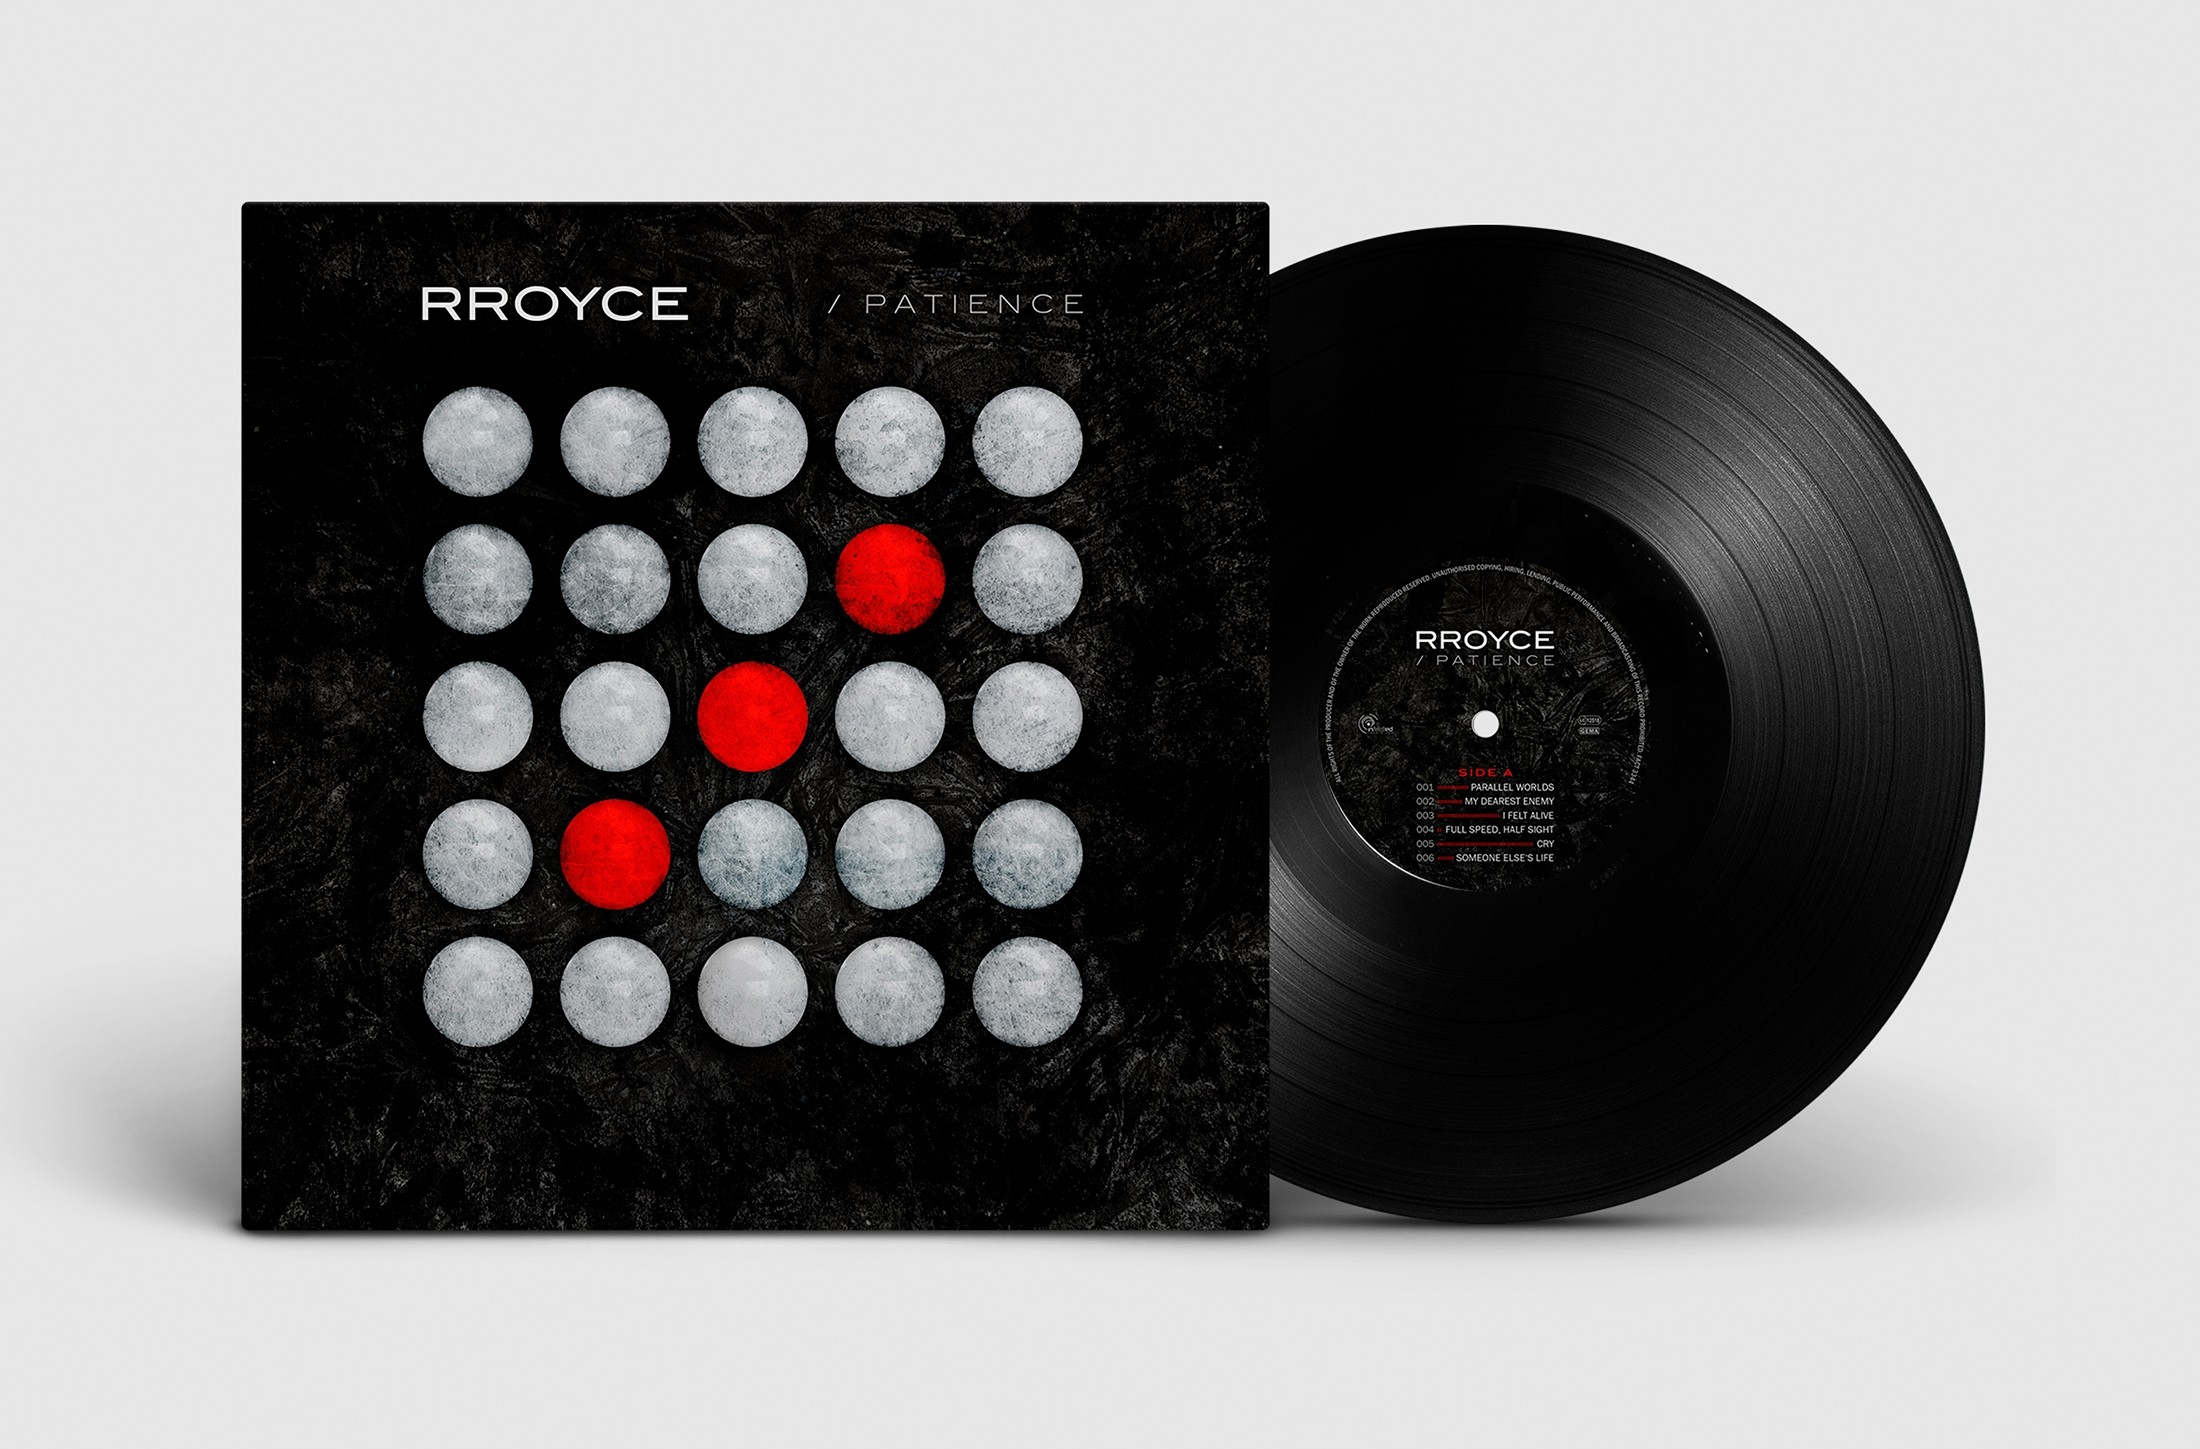 Rroyce - Patience (Limited Edition) - LP